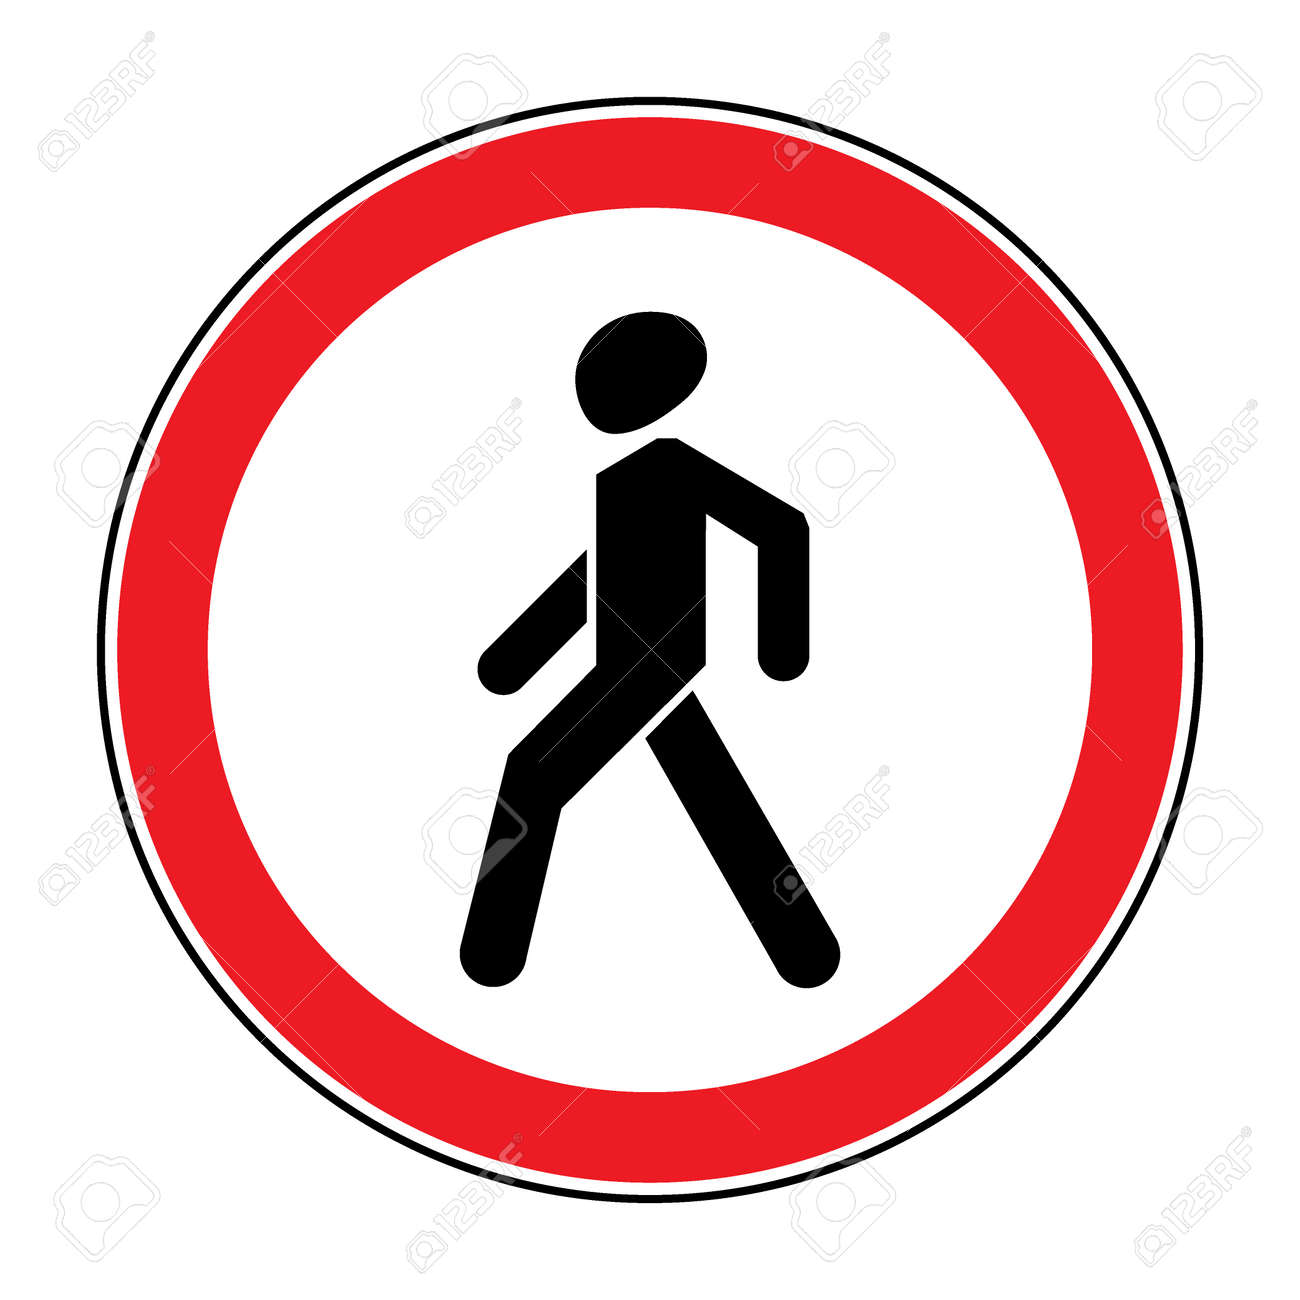 prohibition no pedestrian sign no walking traffic sign no crossing rh 123rf com Cyclist Clip Art Seat Belt Clip Art